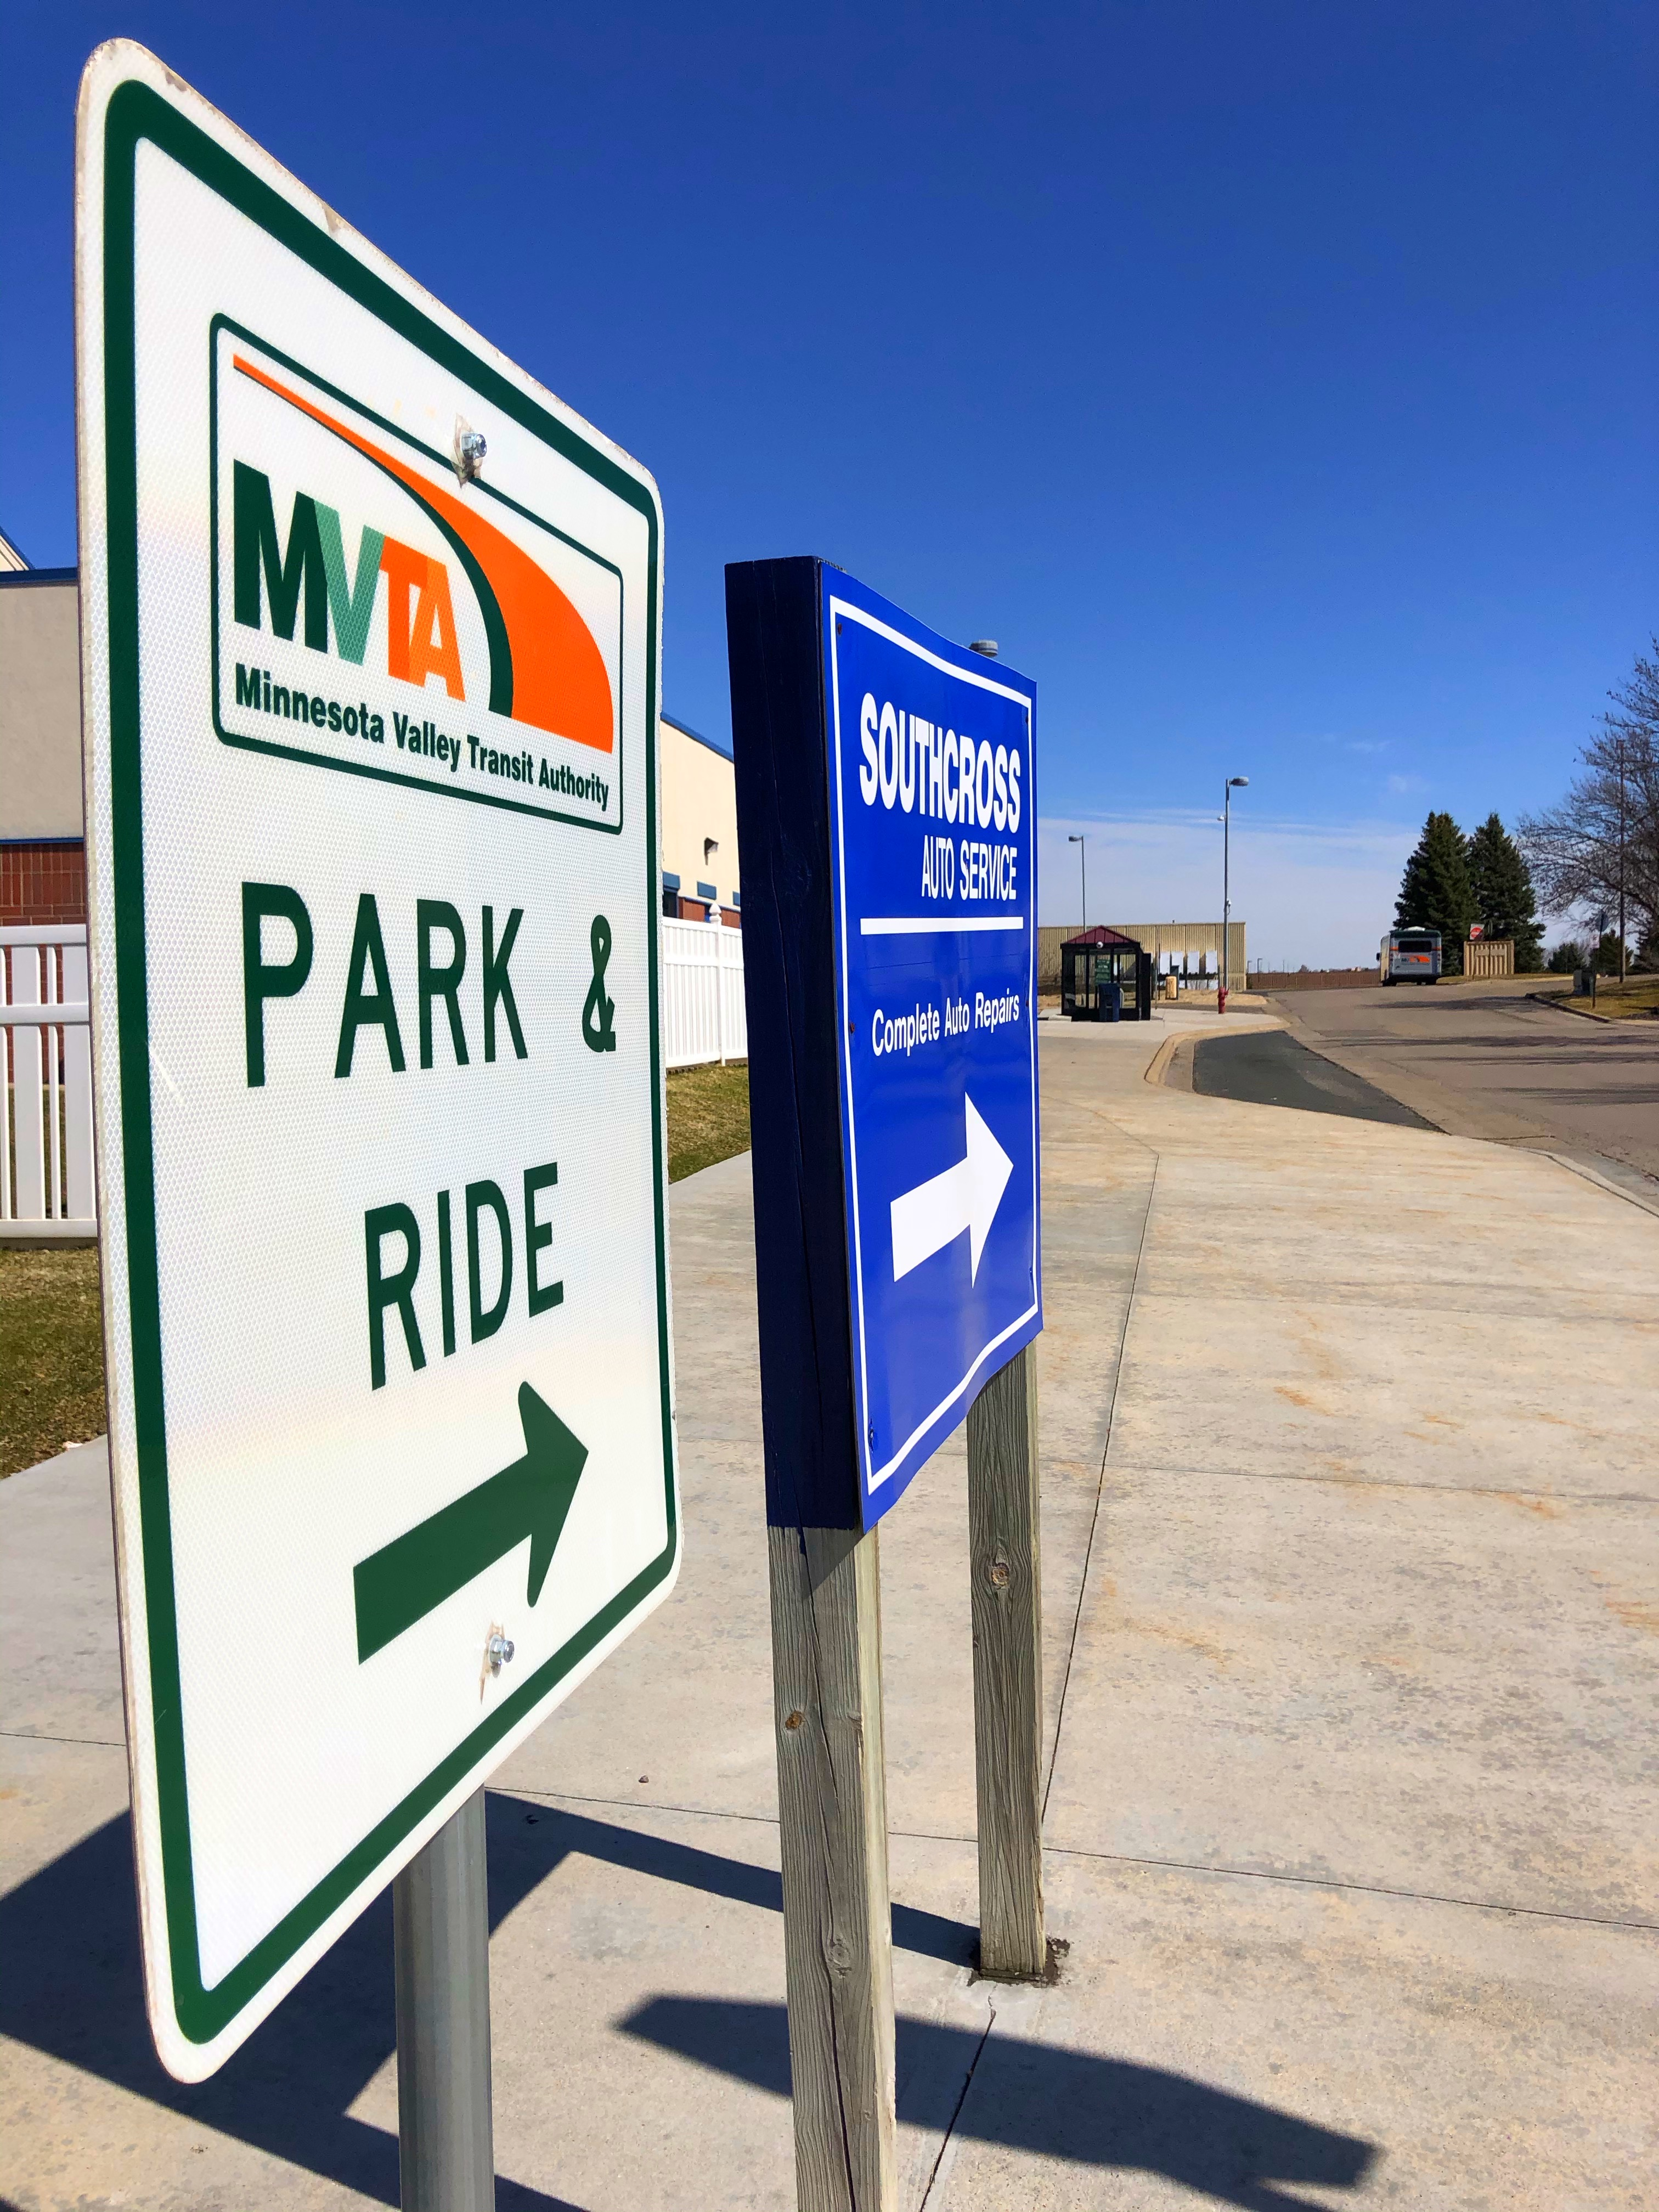 Savage Park & Ride is located just northeast of the intersection at County Road 42 & Huntington Avenue in Savage, behind McDonald's restaurant.